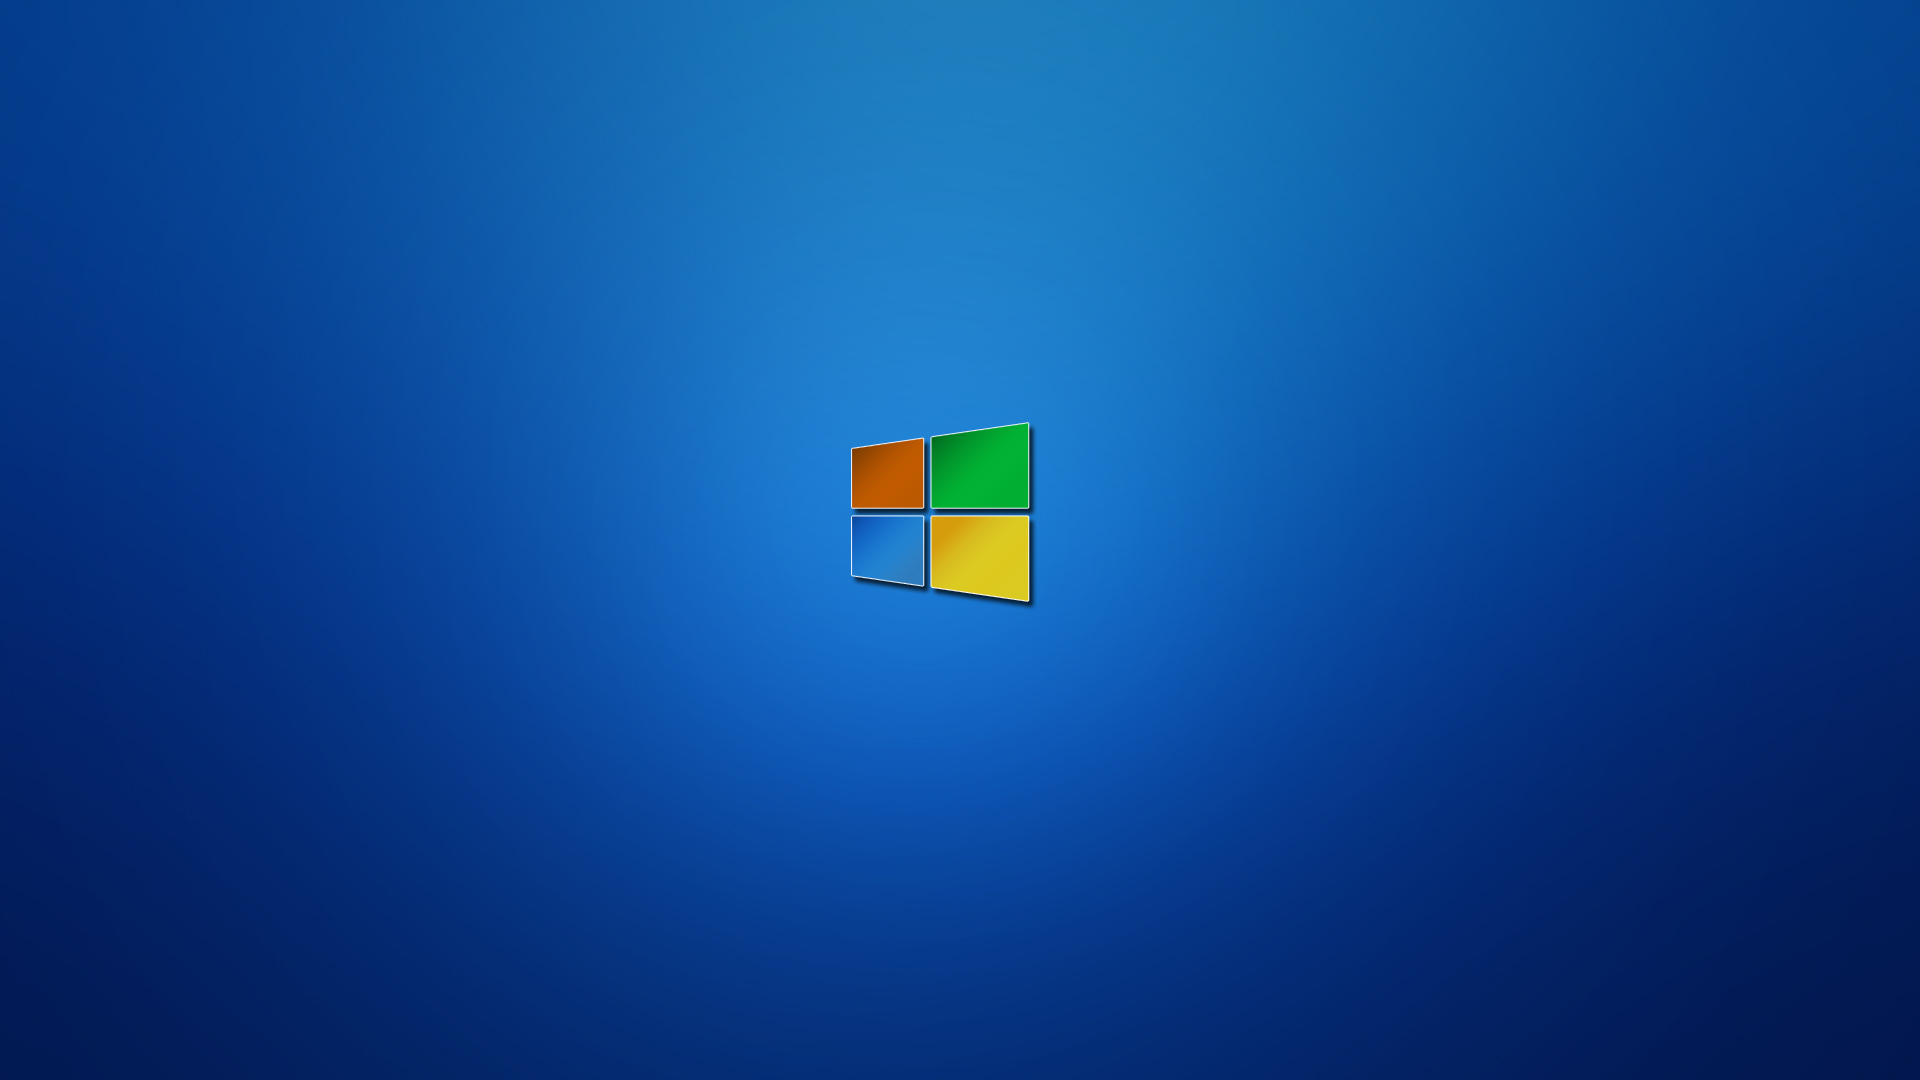 windows_8_metro_wallpaper_logo_by_reymond_p_scene-d4q4mrg.jpg